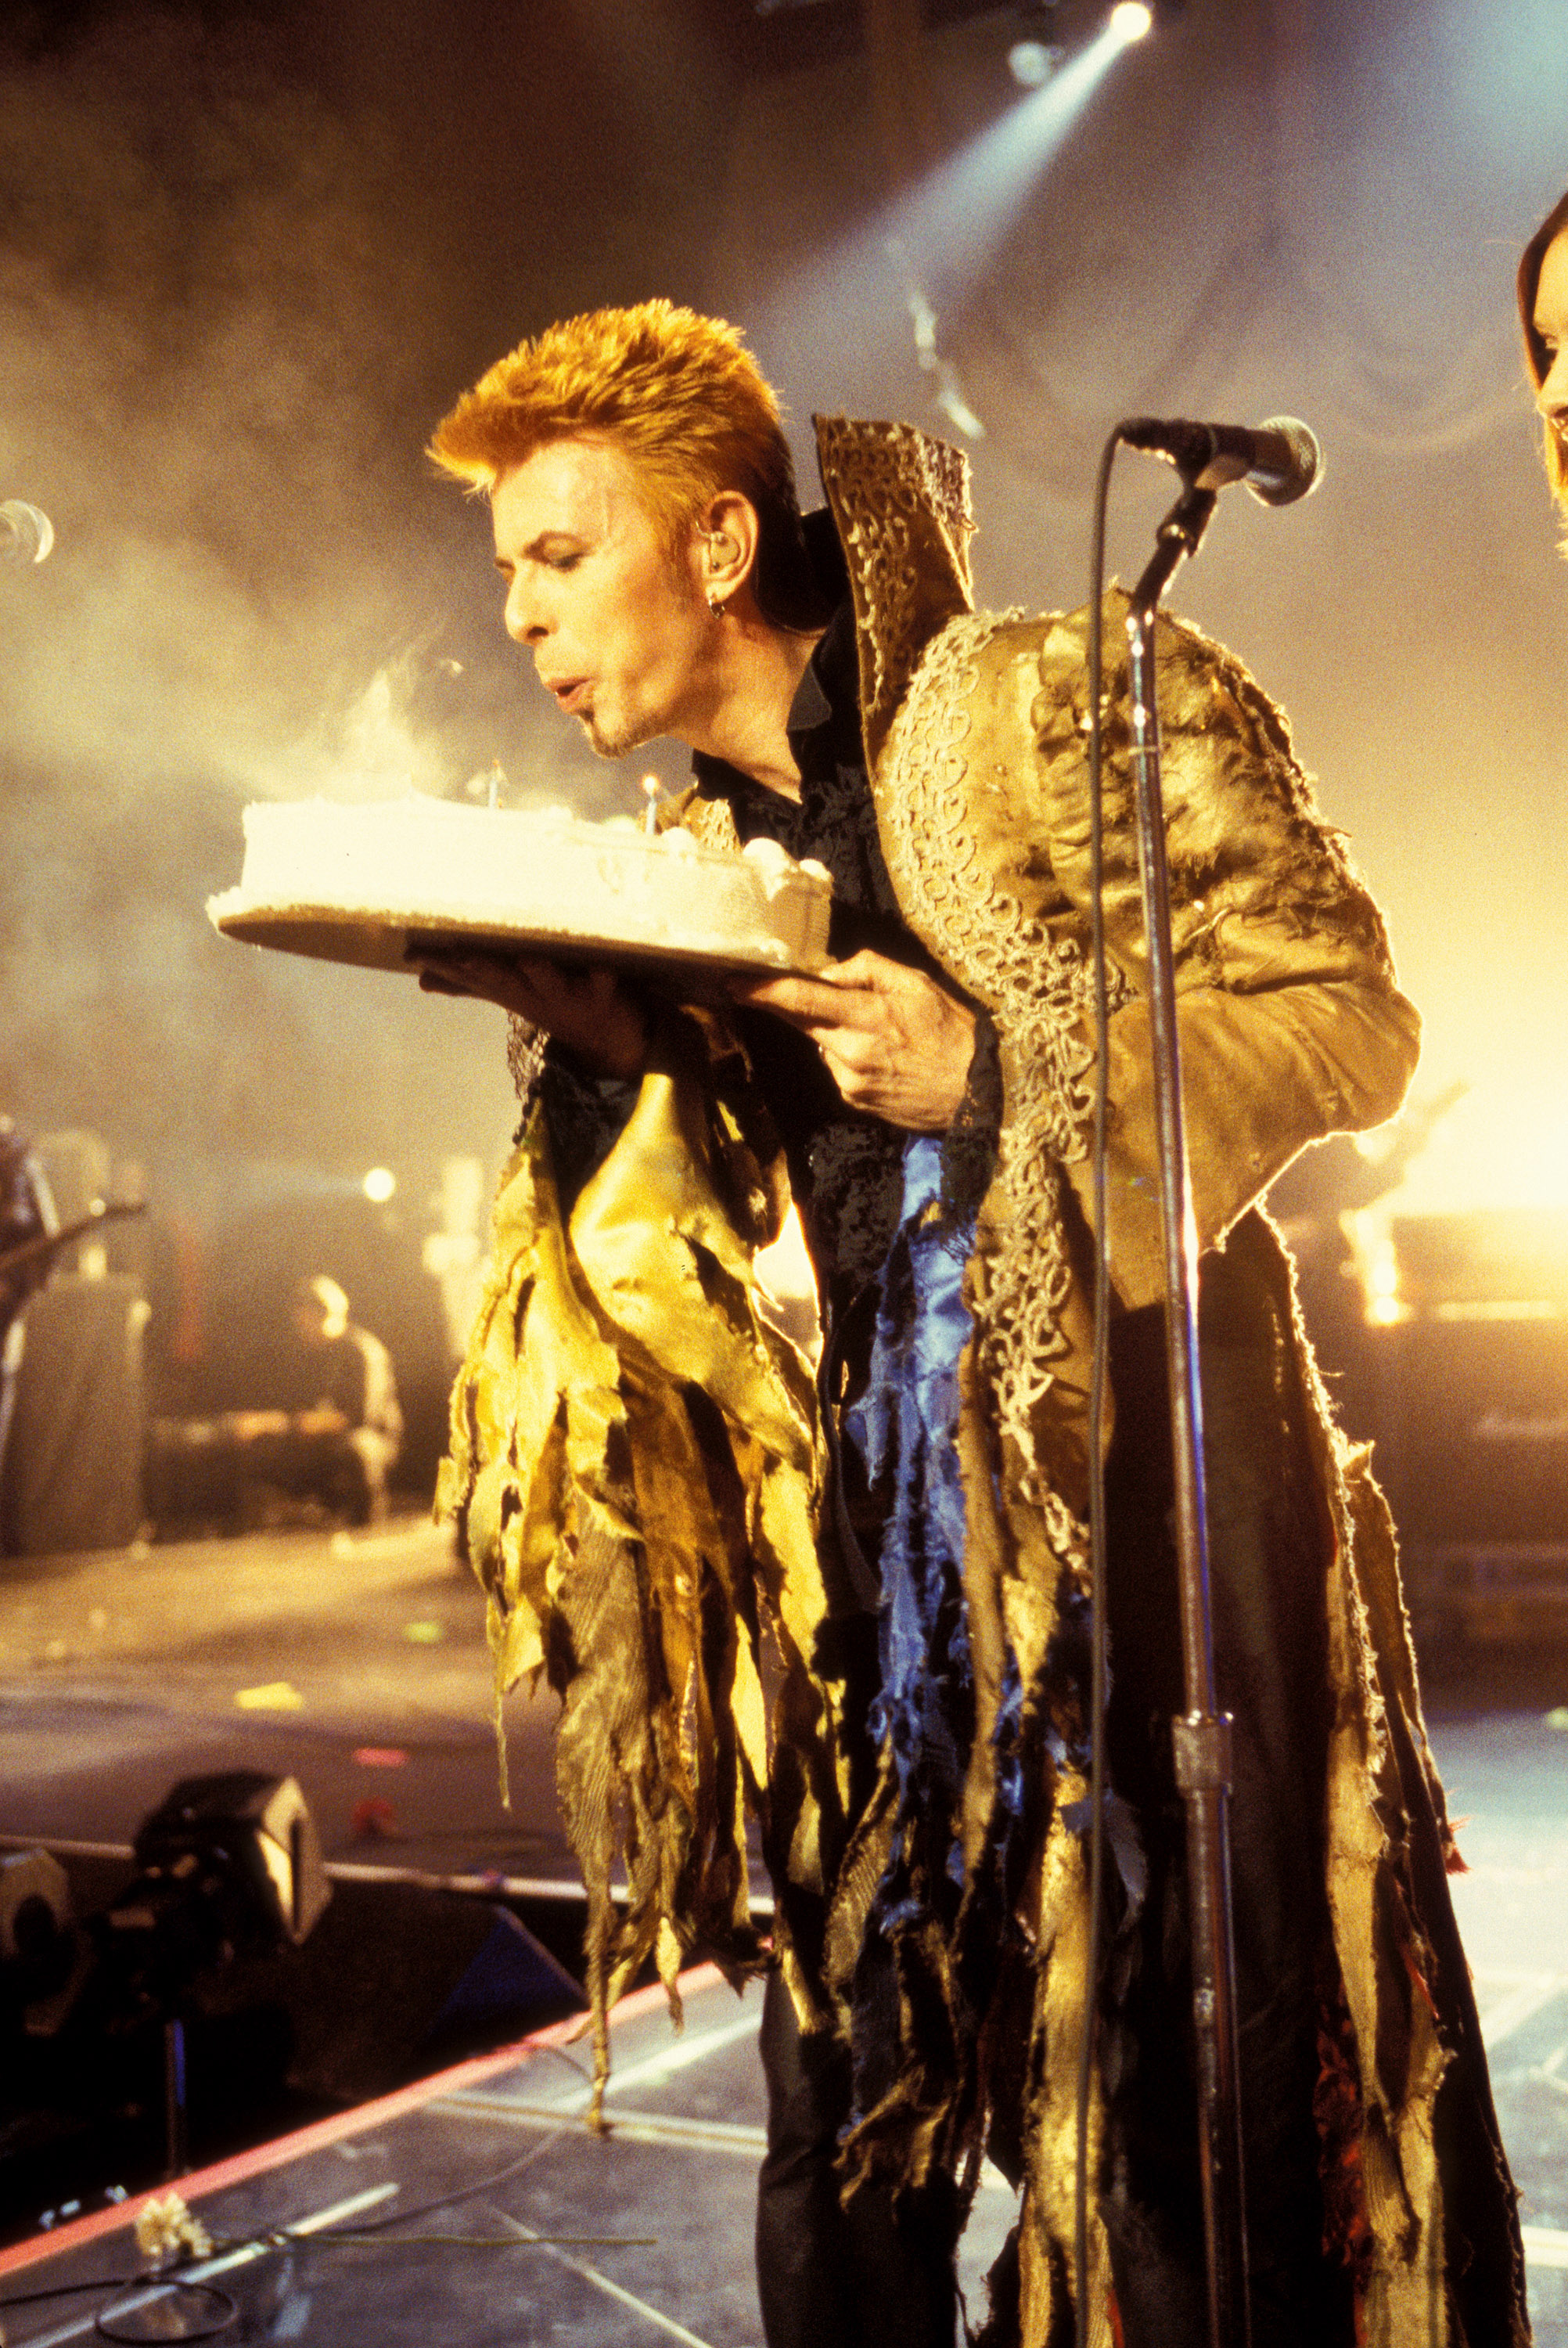 David Bowie onstage at Madison Square Garden for his 50th Birthday Concert in New York City on Jan. 9, 1997.